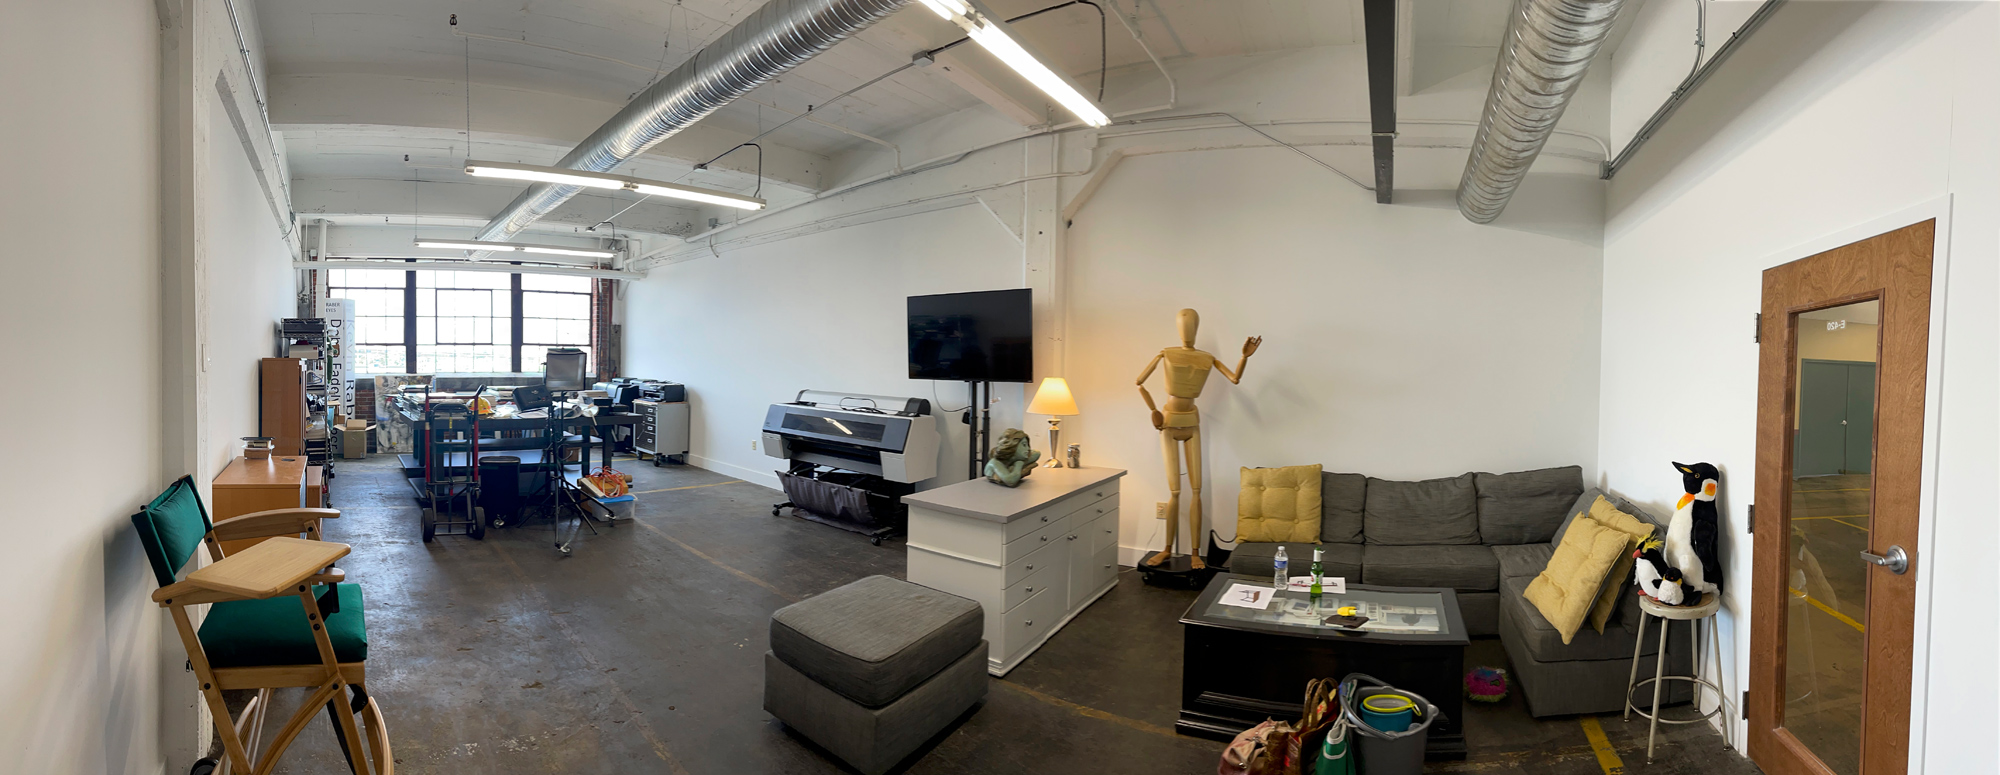 Our new location in the Stutz Building